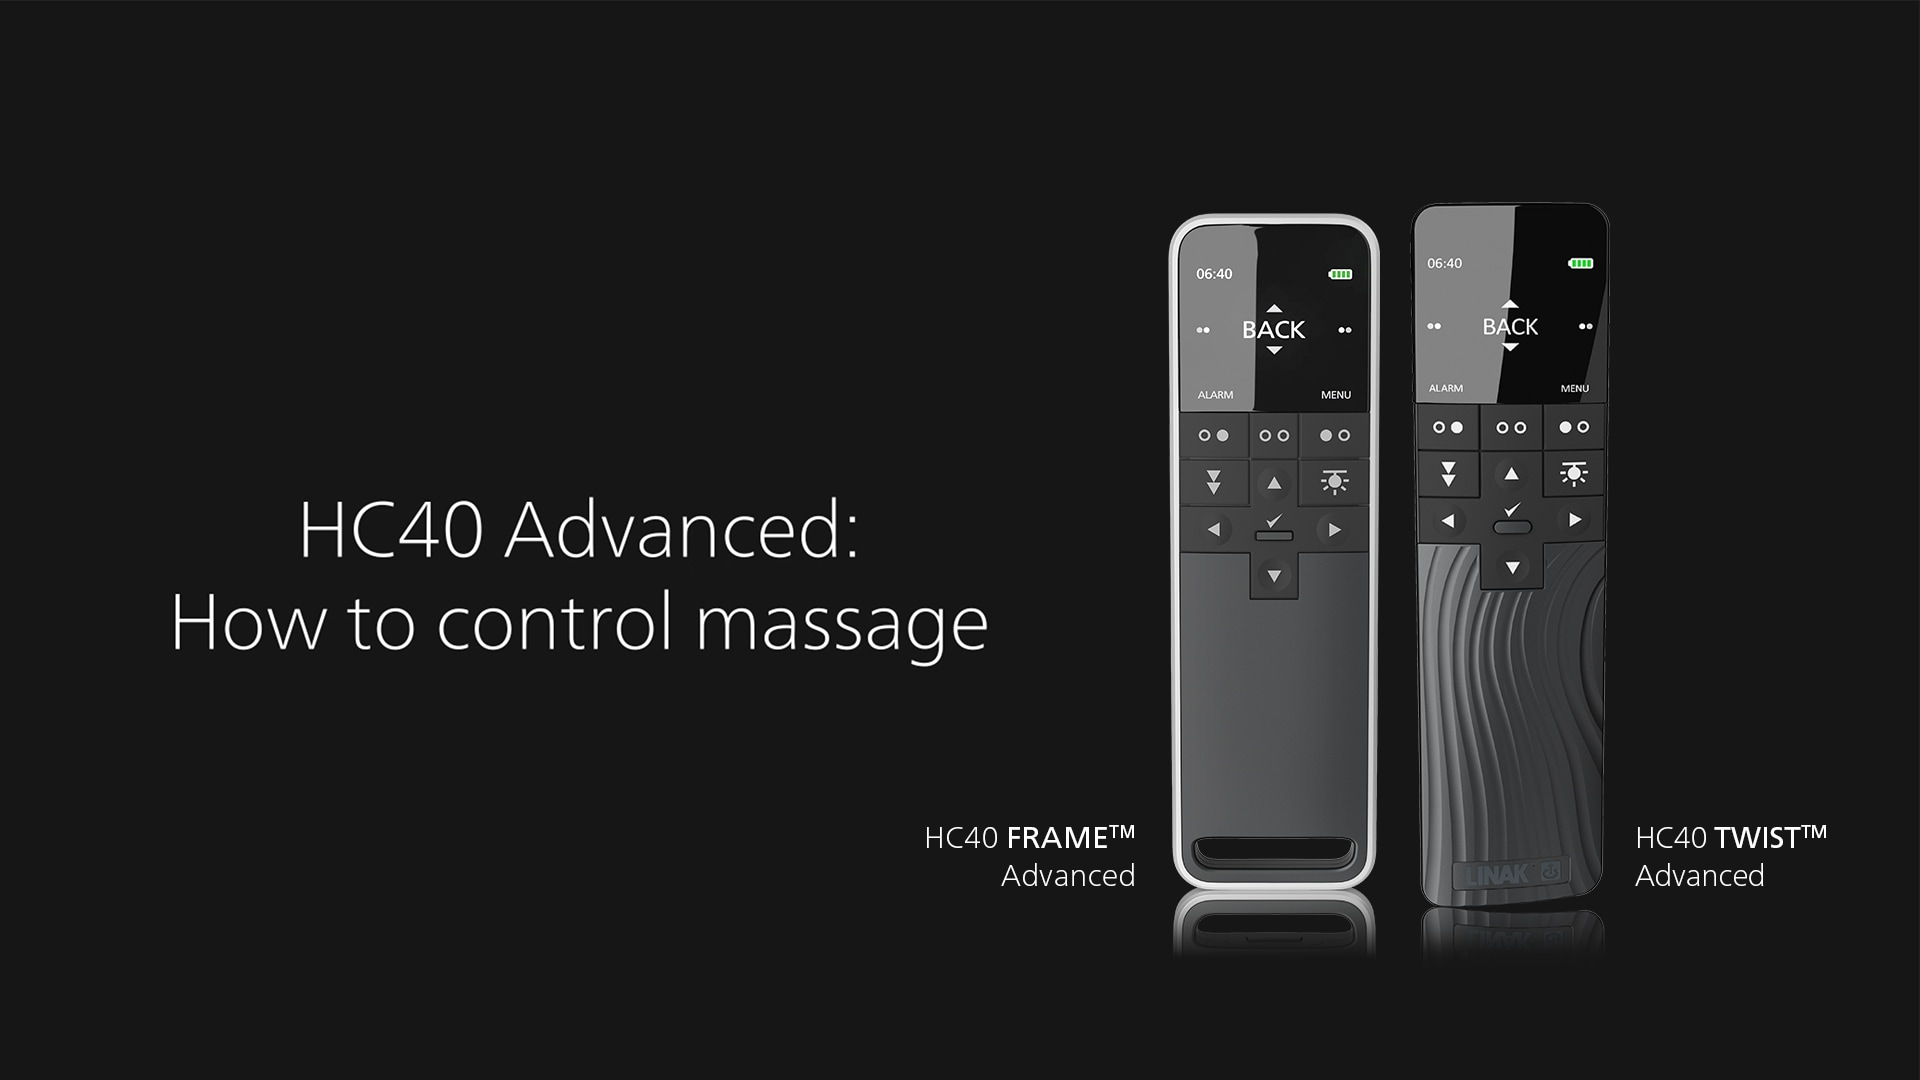 HC40 Advanced: Massagesteuerung